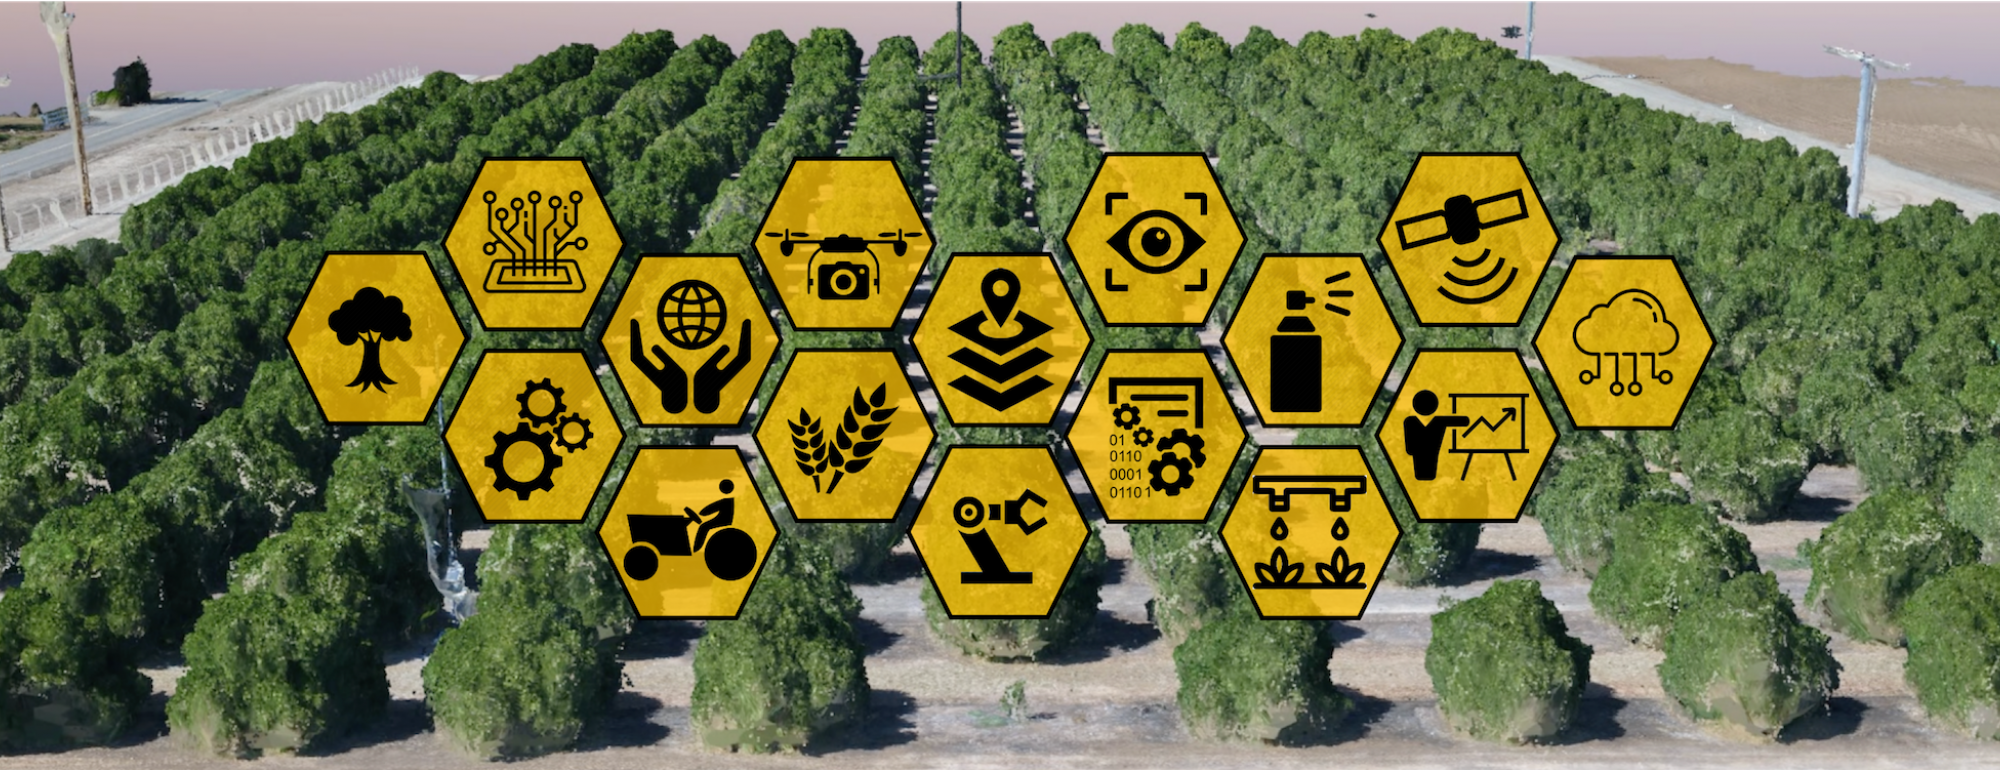 Virtual Orchard Digital Agriculture UC Davis Alireza Pourreza Biological and Agricultural Engineering